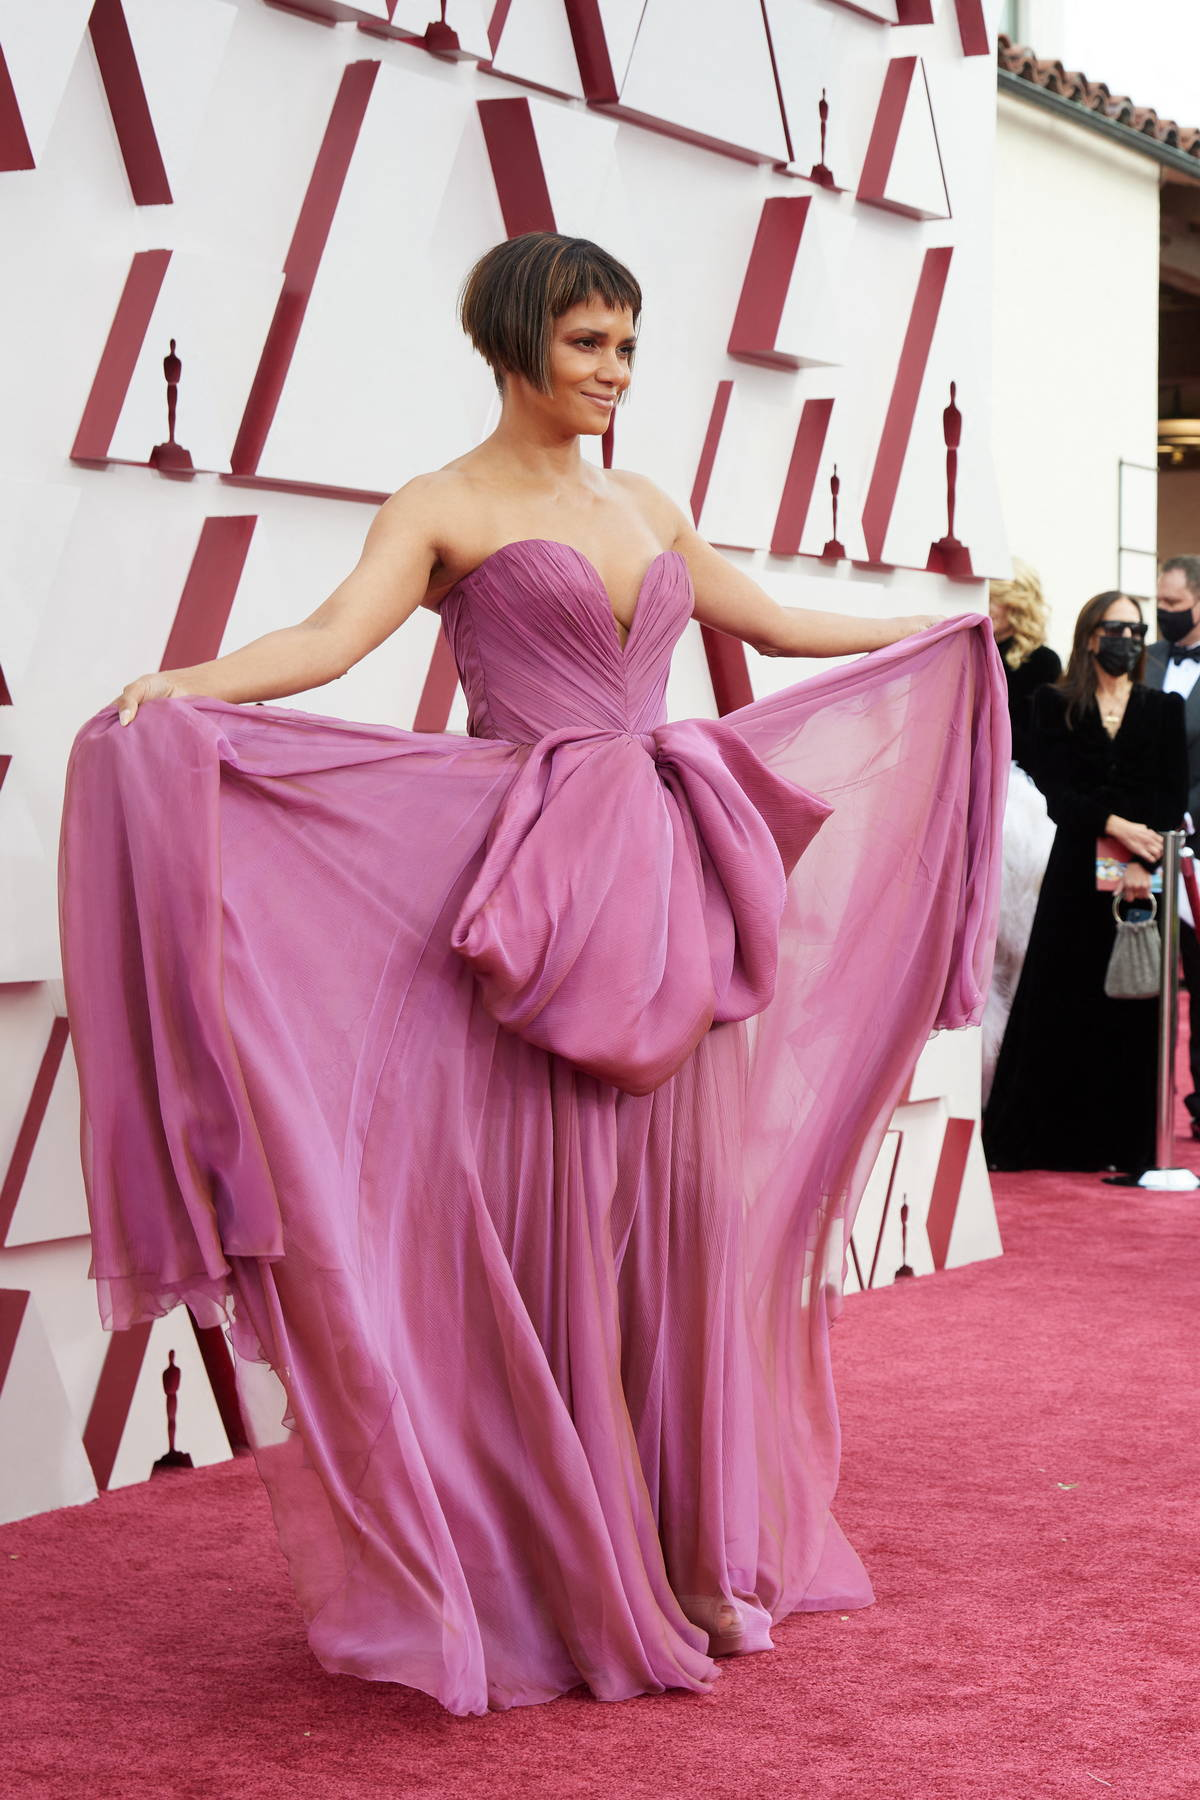 Halle Berry attends the 93rd Annual Academy Awards at Union Station in Los Angeles